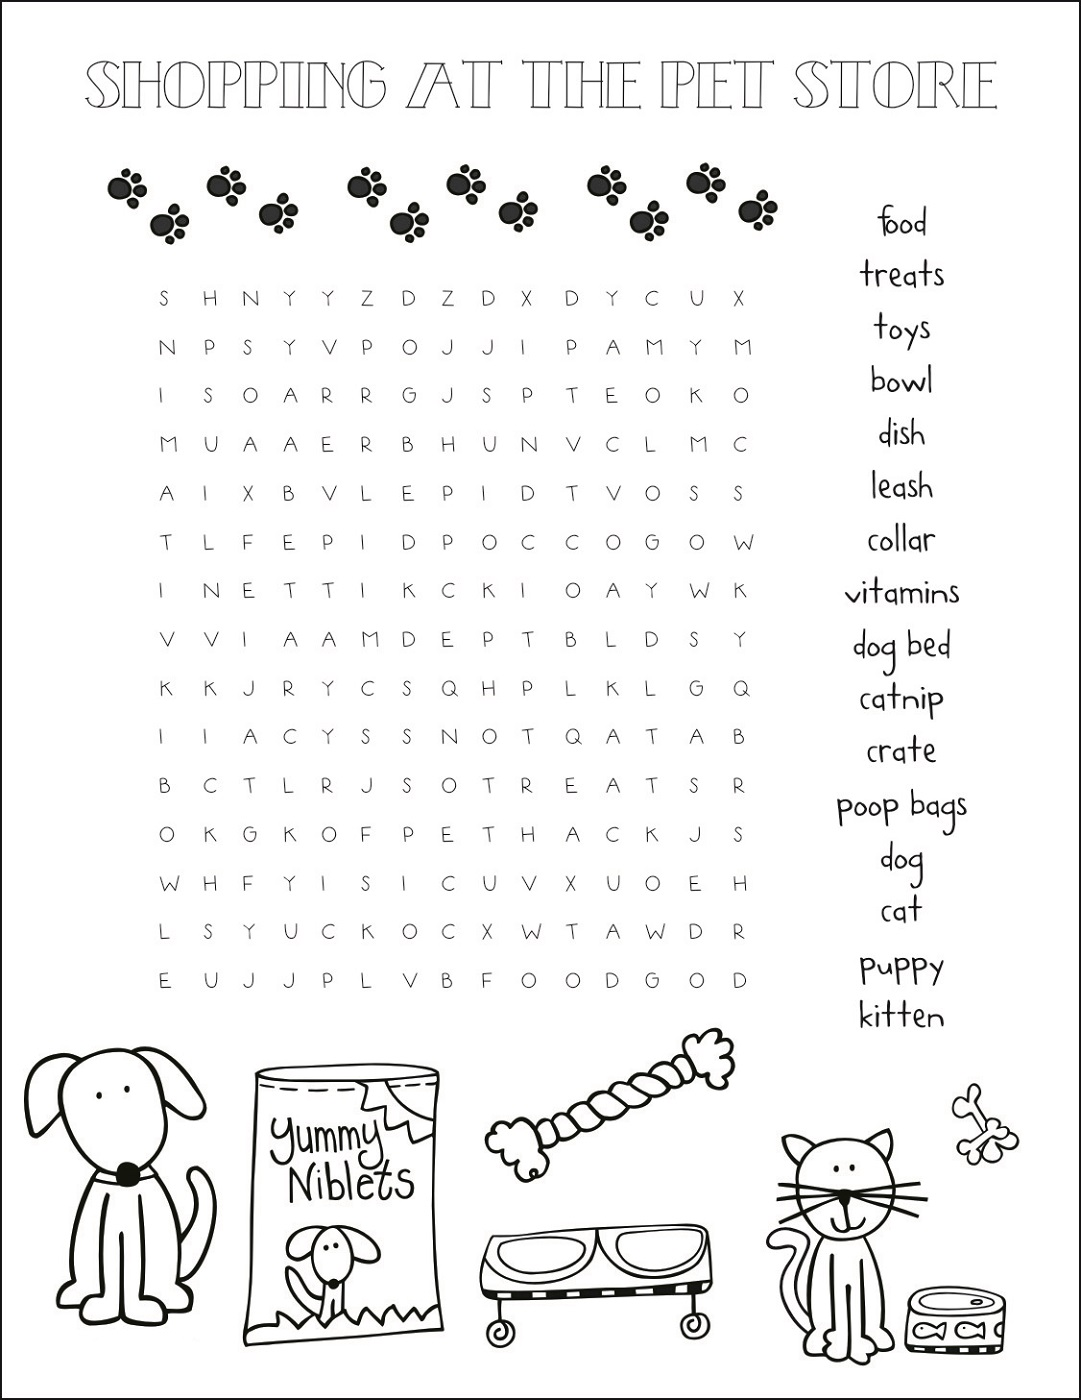 Pet Word Search Printable